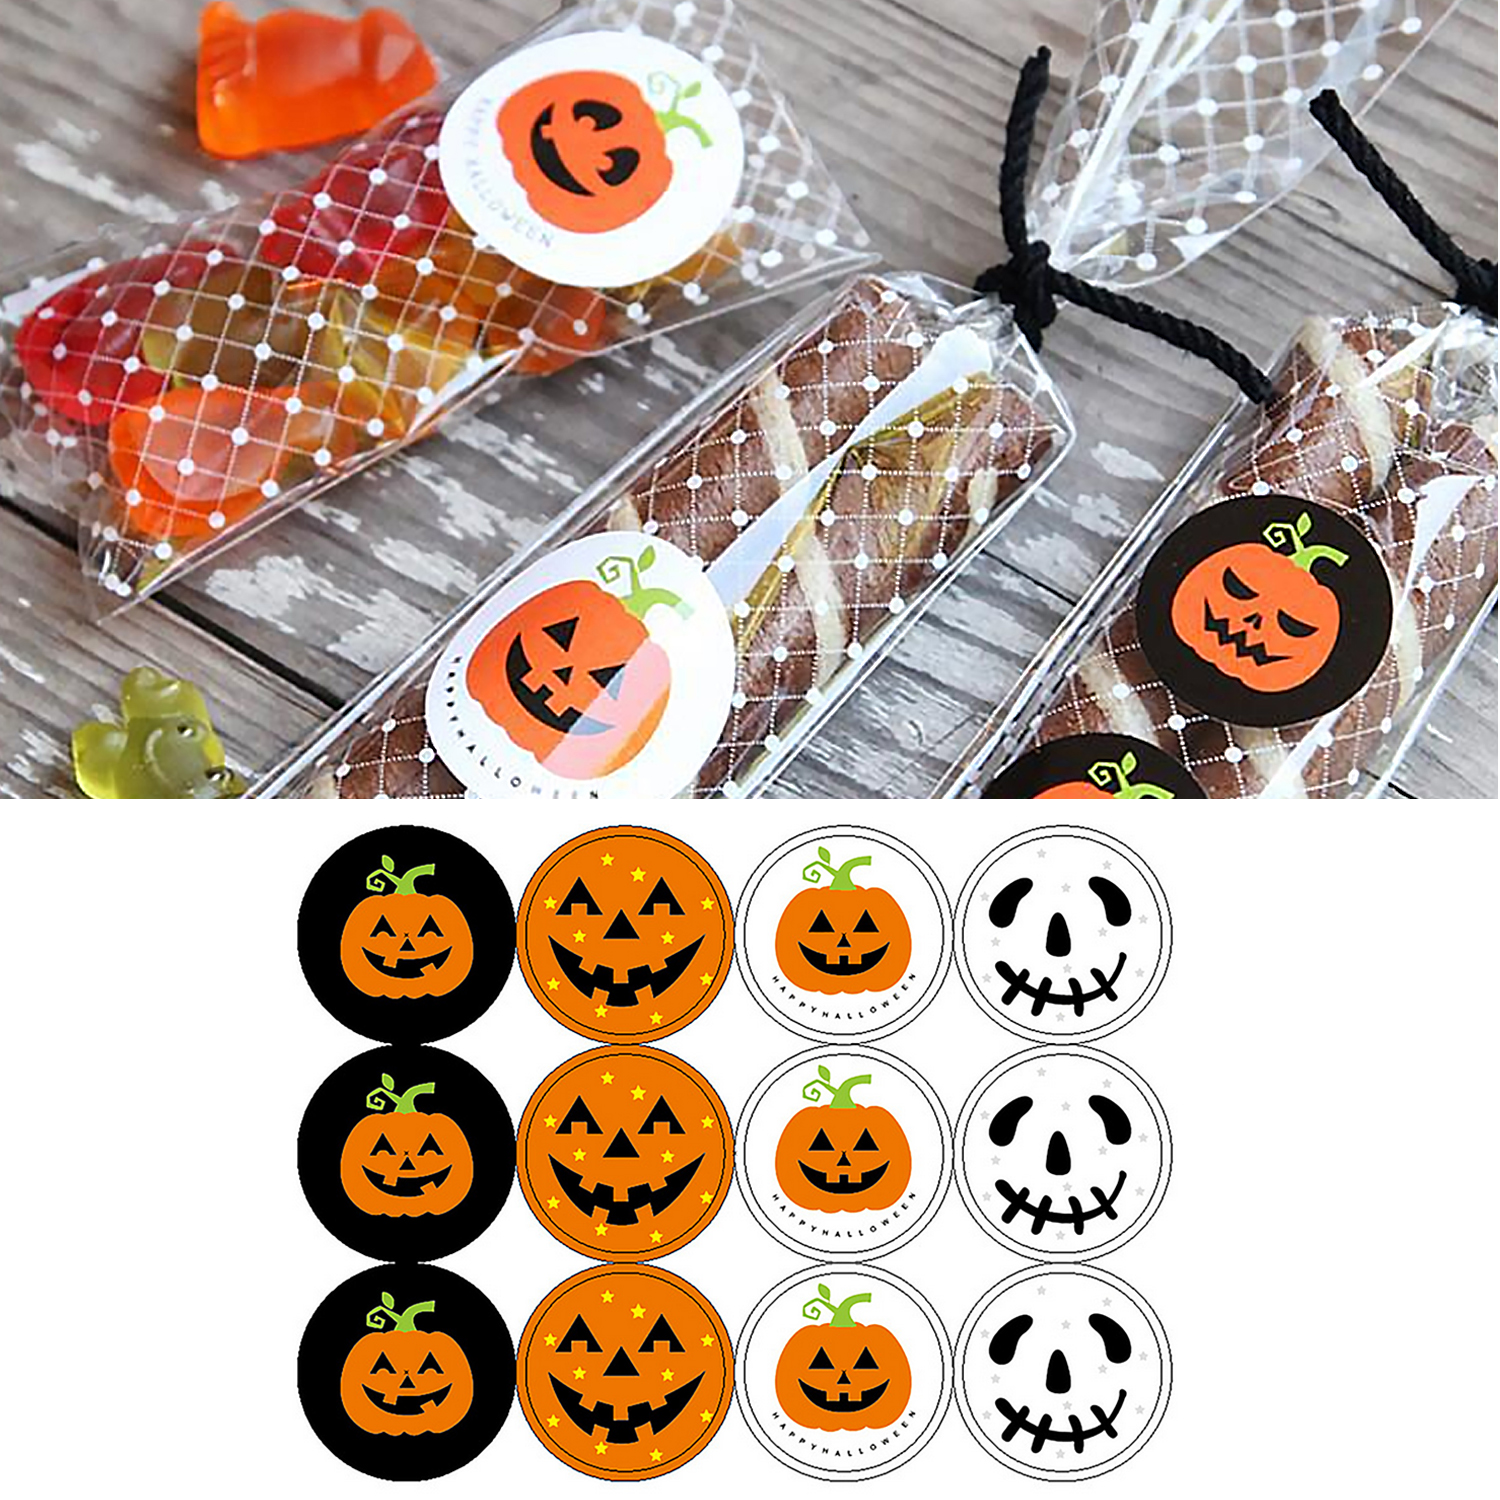 120PCS Halloween Pumpkin Skull Sealing Stickers for Party Favors Gifts <font><b>Candy</b></font> Biscuit Food <font><b>Bag</b></font> Gift Boxes Envelope Decorating image